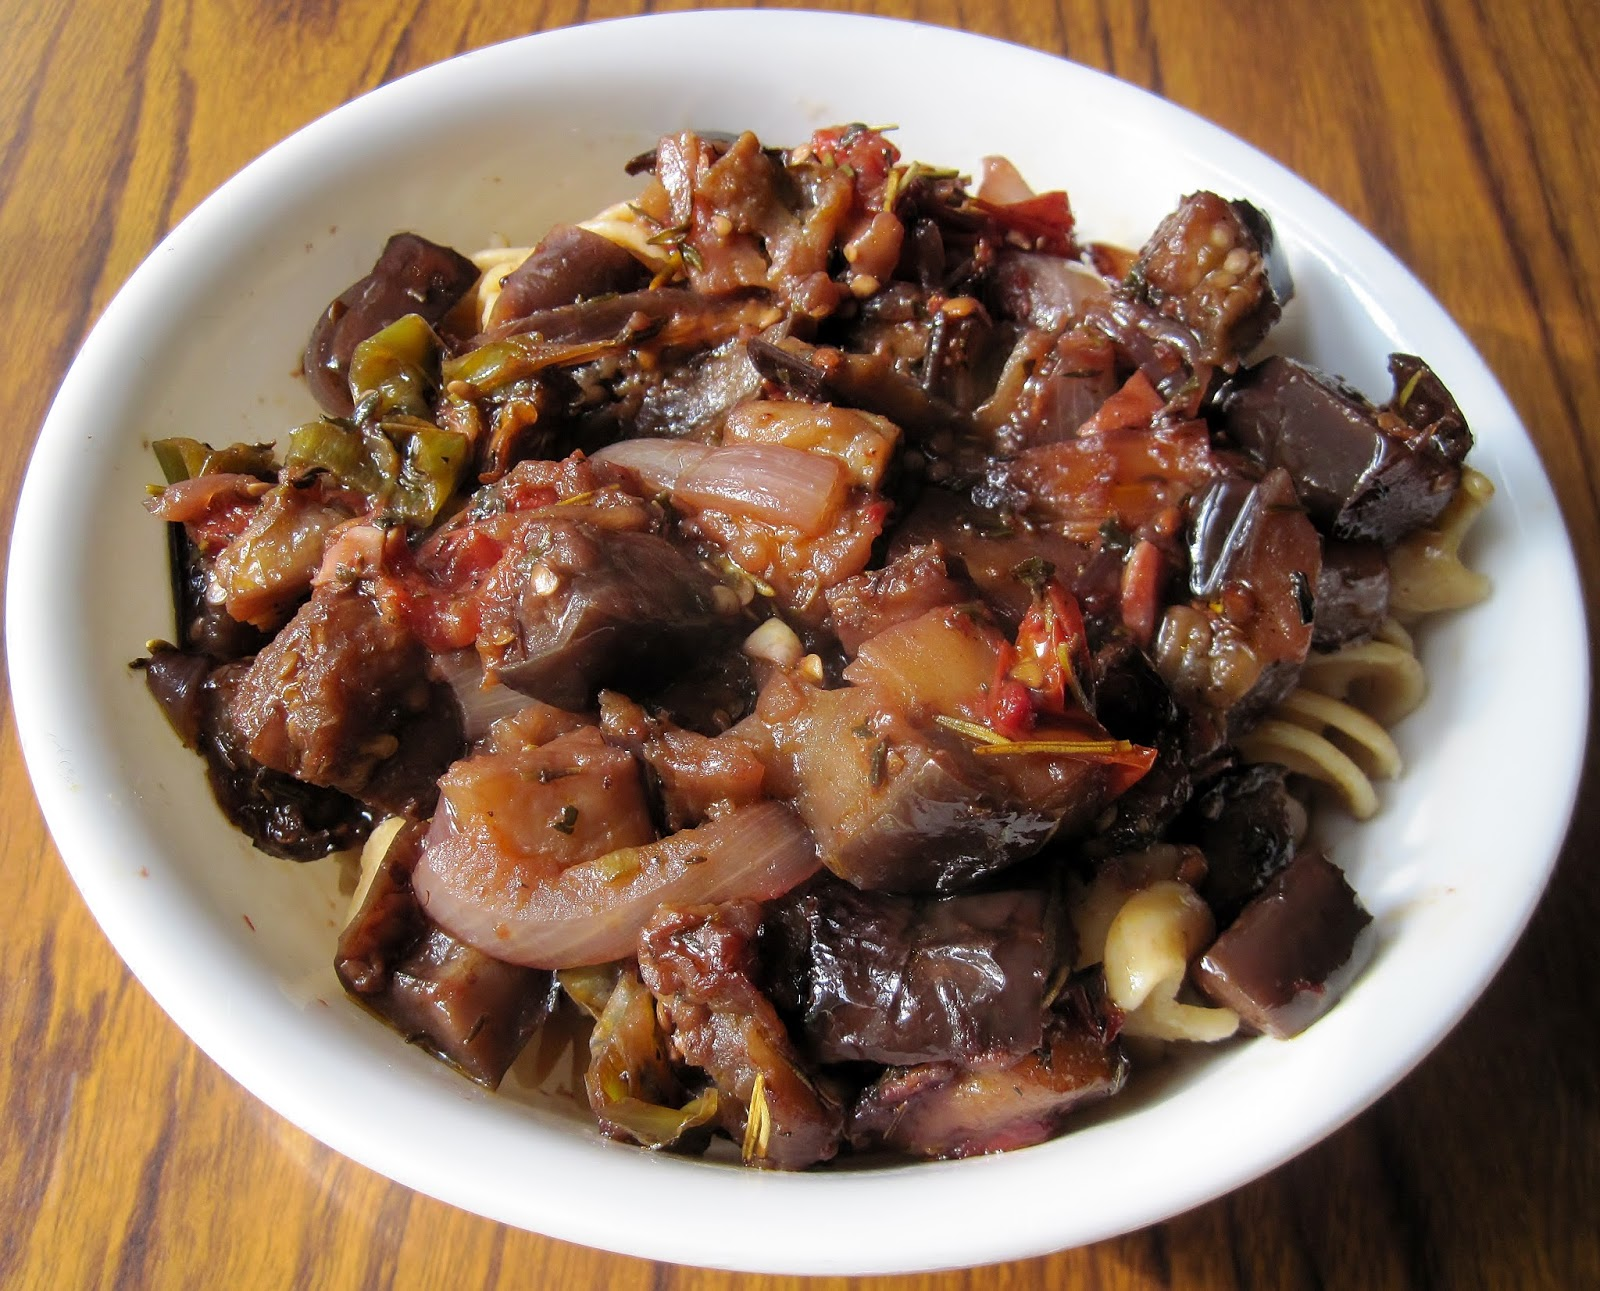 ... Sauce Company: The Reluctant Cook's Roasted Eggplant with Pasta